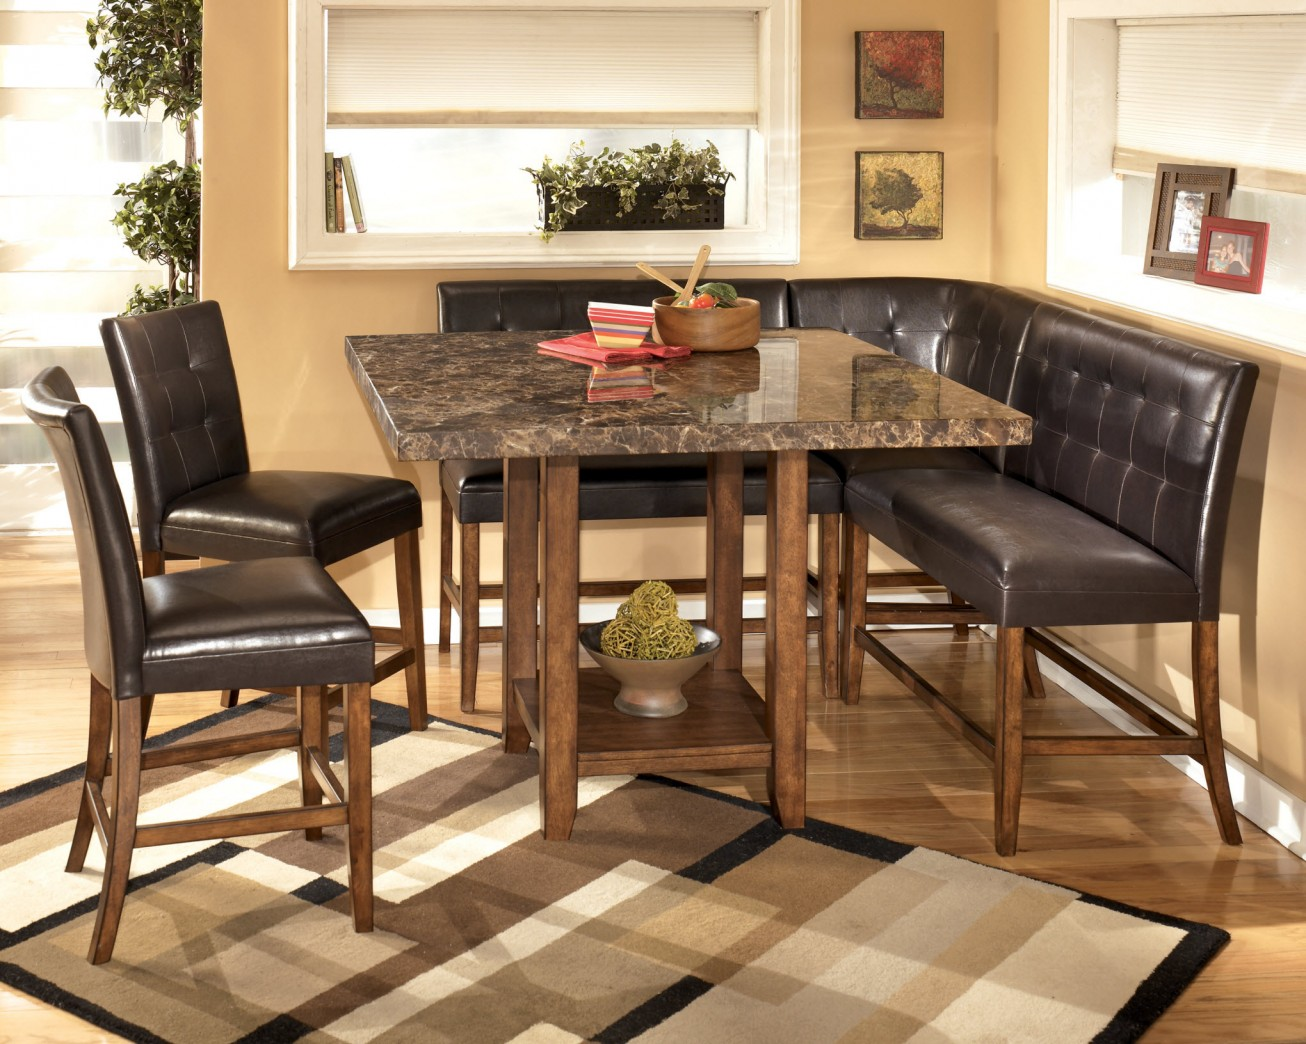 fascinating granite dining table set with rack underneath and sectional tufted leather chairs plus modern rug : sectional dining table - Sectionals, Sofas & Couches